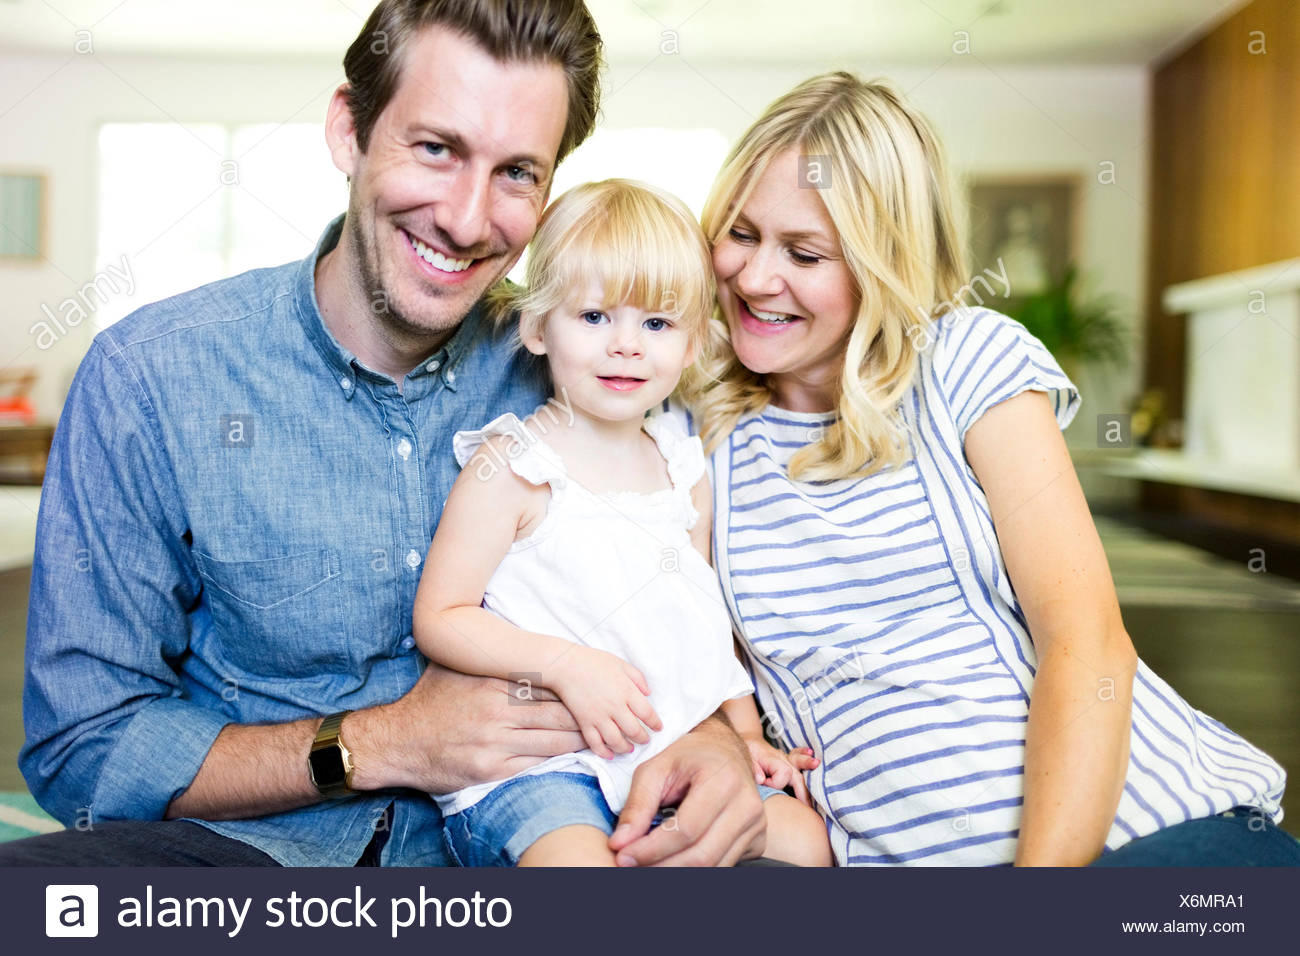 Family portrait with daughter (2-3) - Stock Image